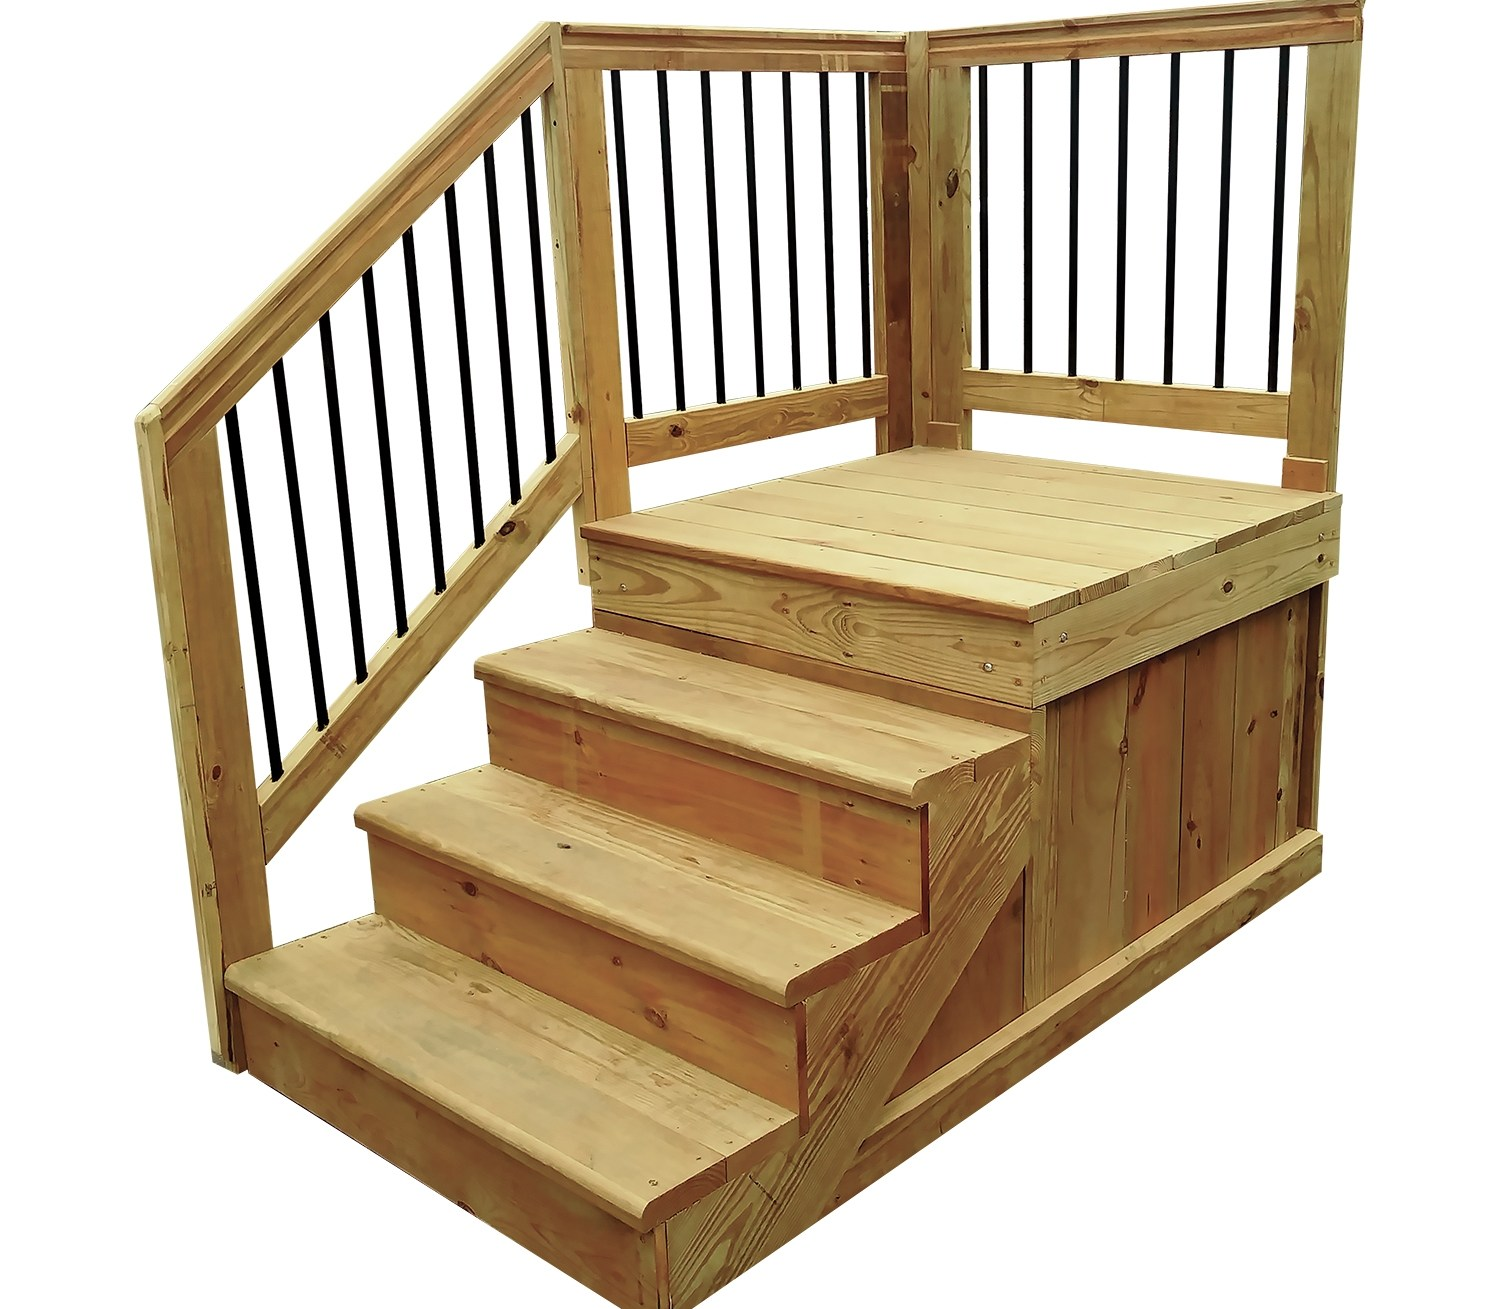 Wood Step 48 X 40 X 40 | Wooden Stairs For Mobile Home | Pre Built | Prefabricated | Simple | Wood Camper | Patio